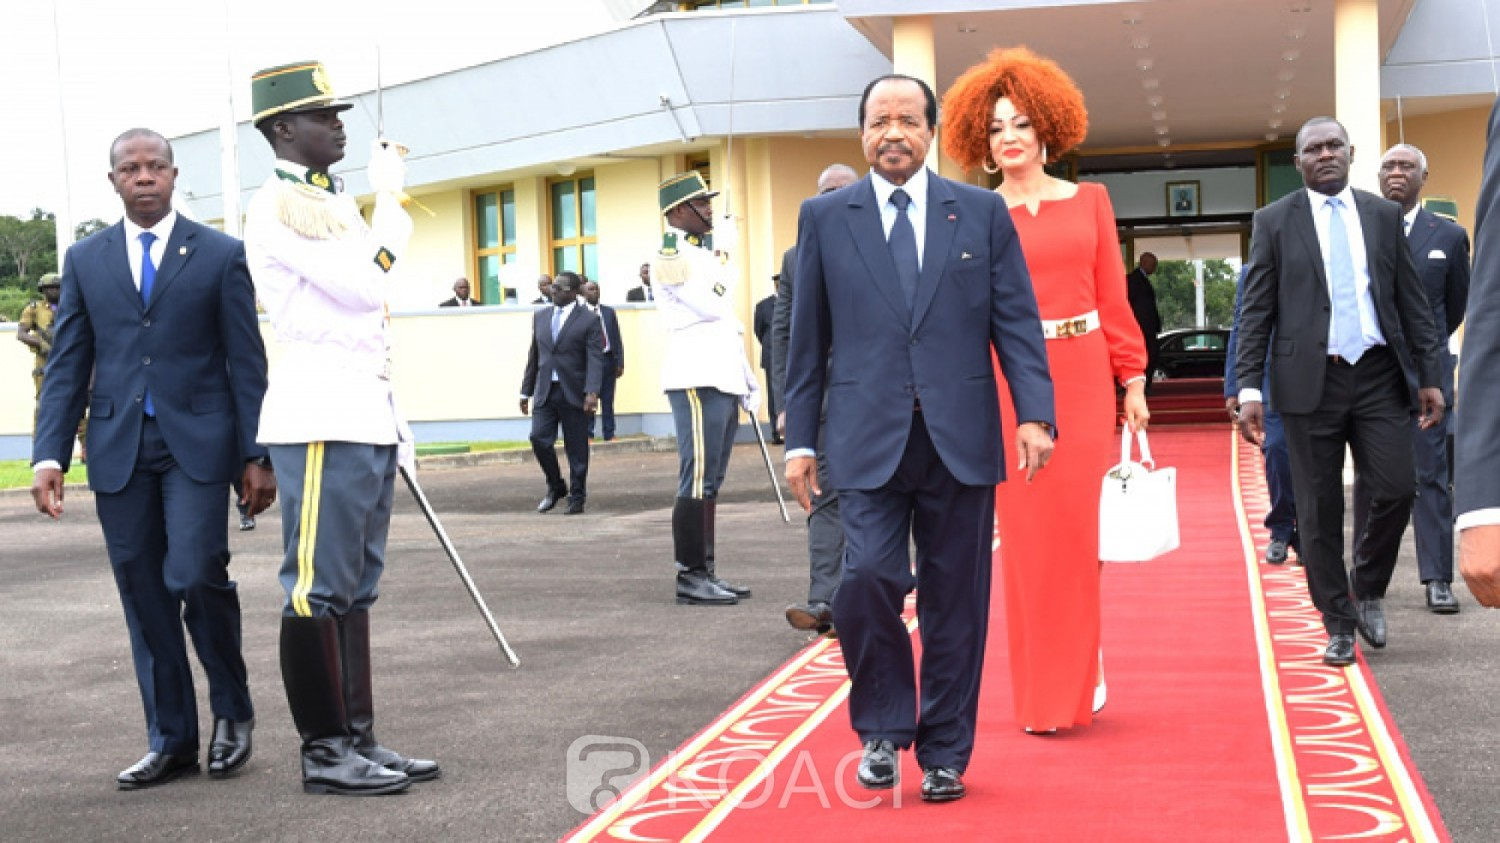 Cameroun-France: Tête-à-tête Biya-Macron, relations apaisées après le Grand dialogue national